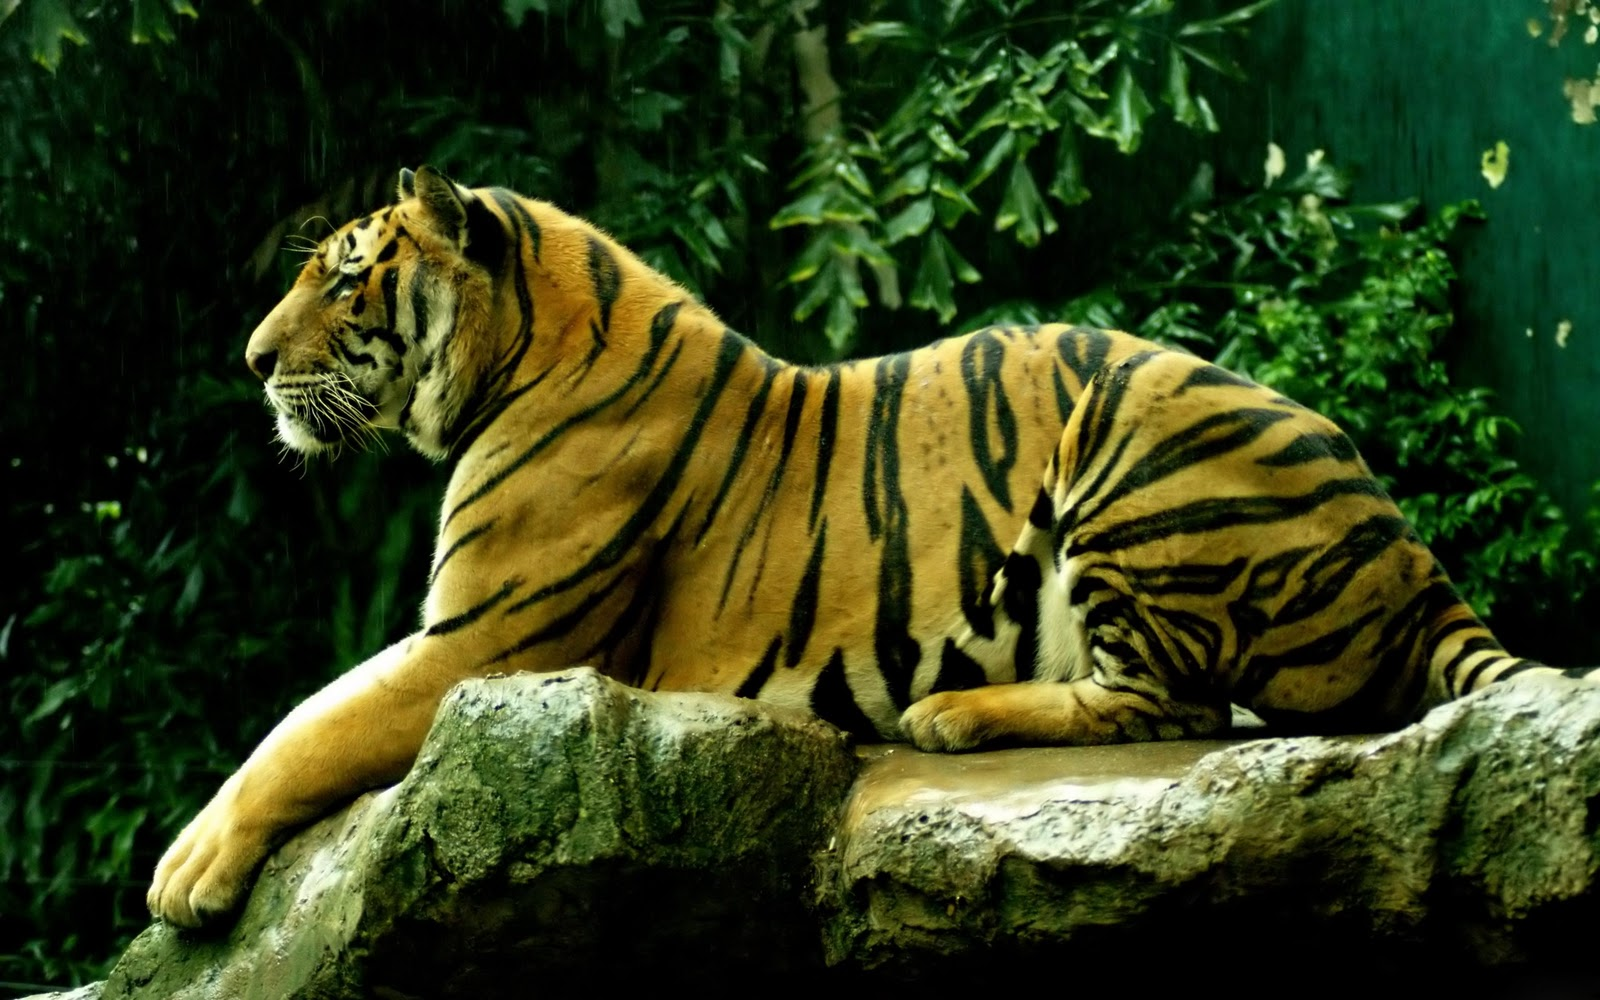 Best Desktop HD Wallpaper - Tiger HD wallpapers